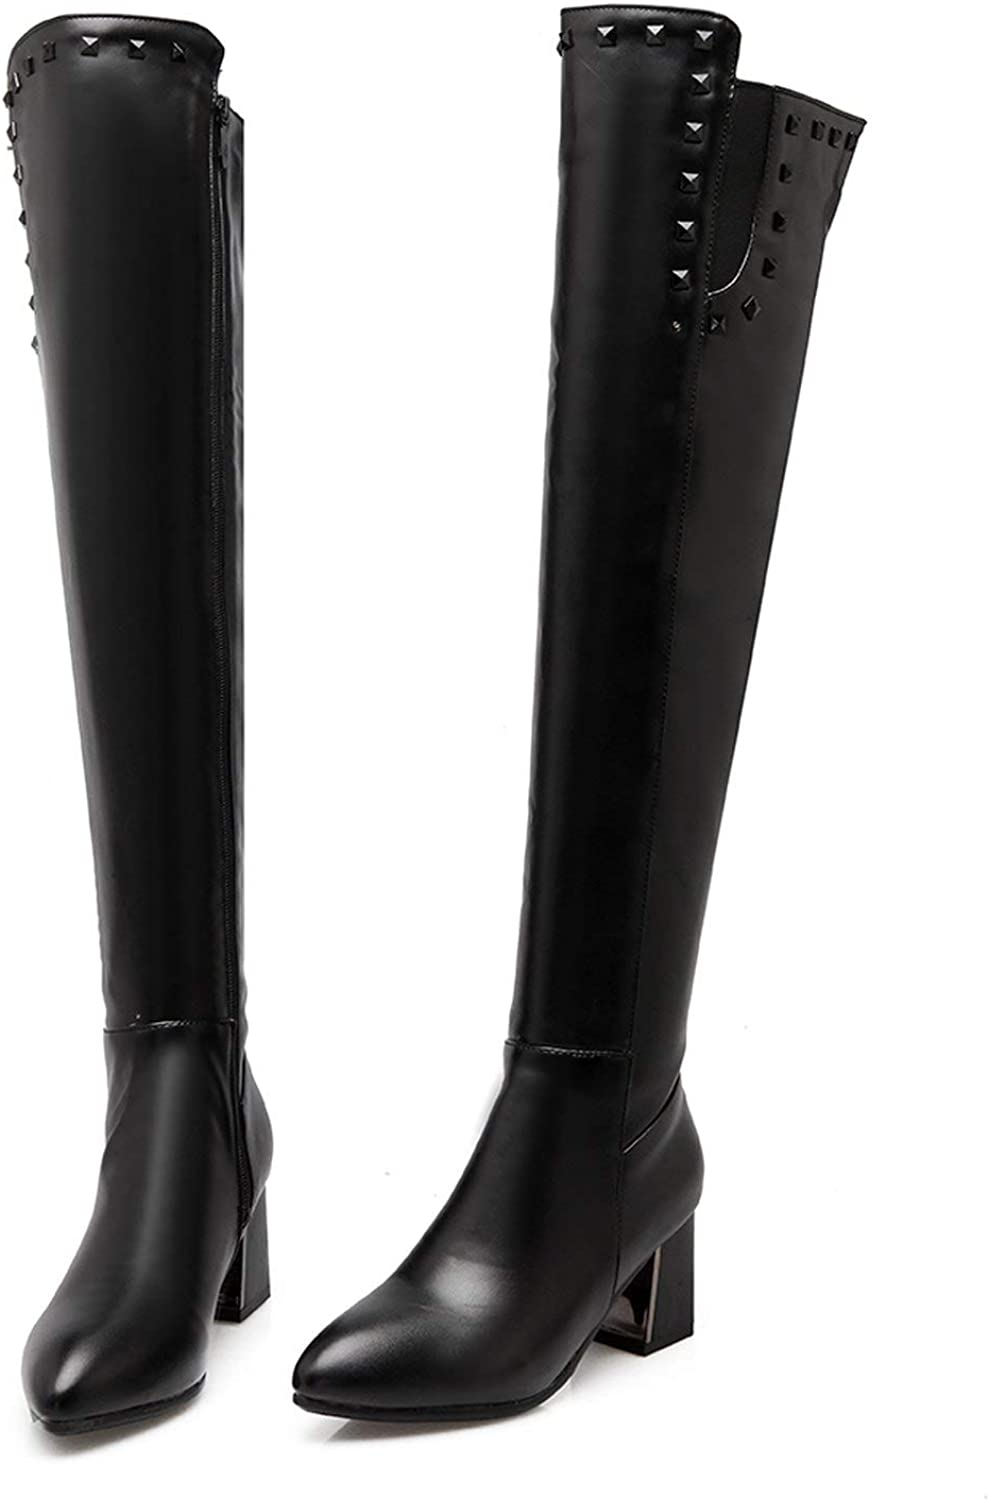 Slim Boots Sexy Over The Knee high Women Snow Boots Women's Thigh high Boots shoes